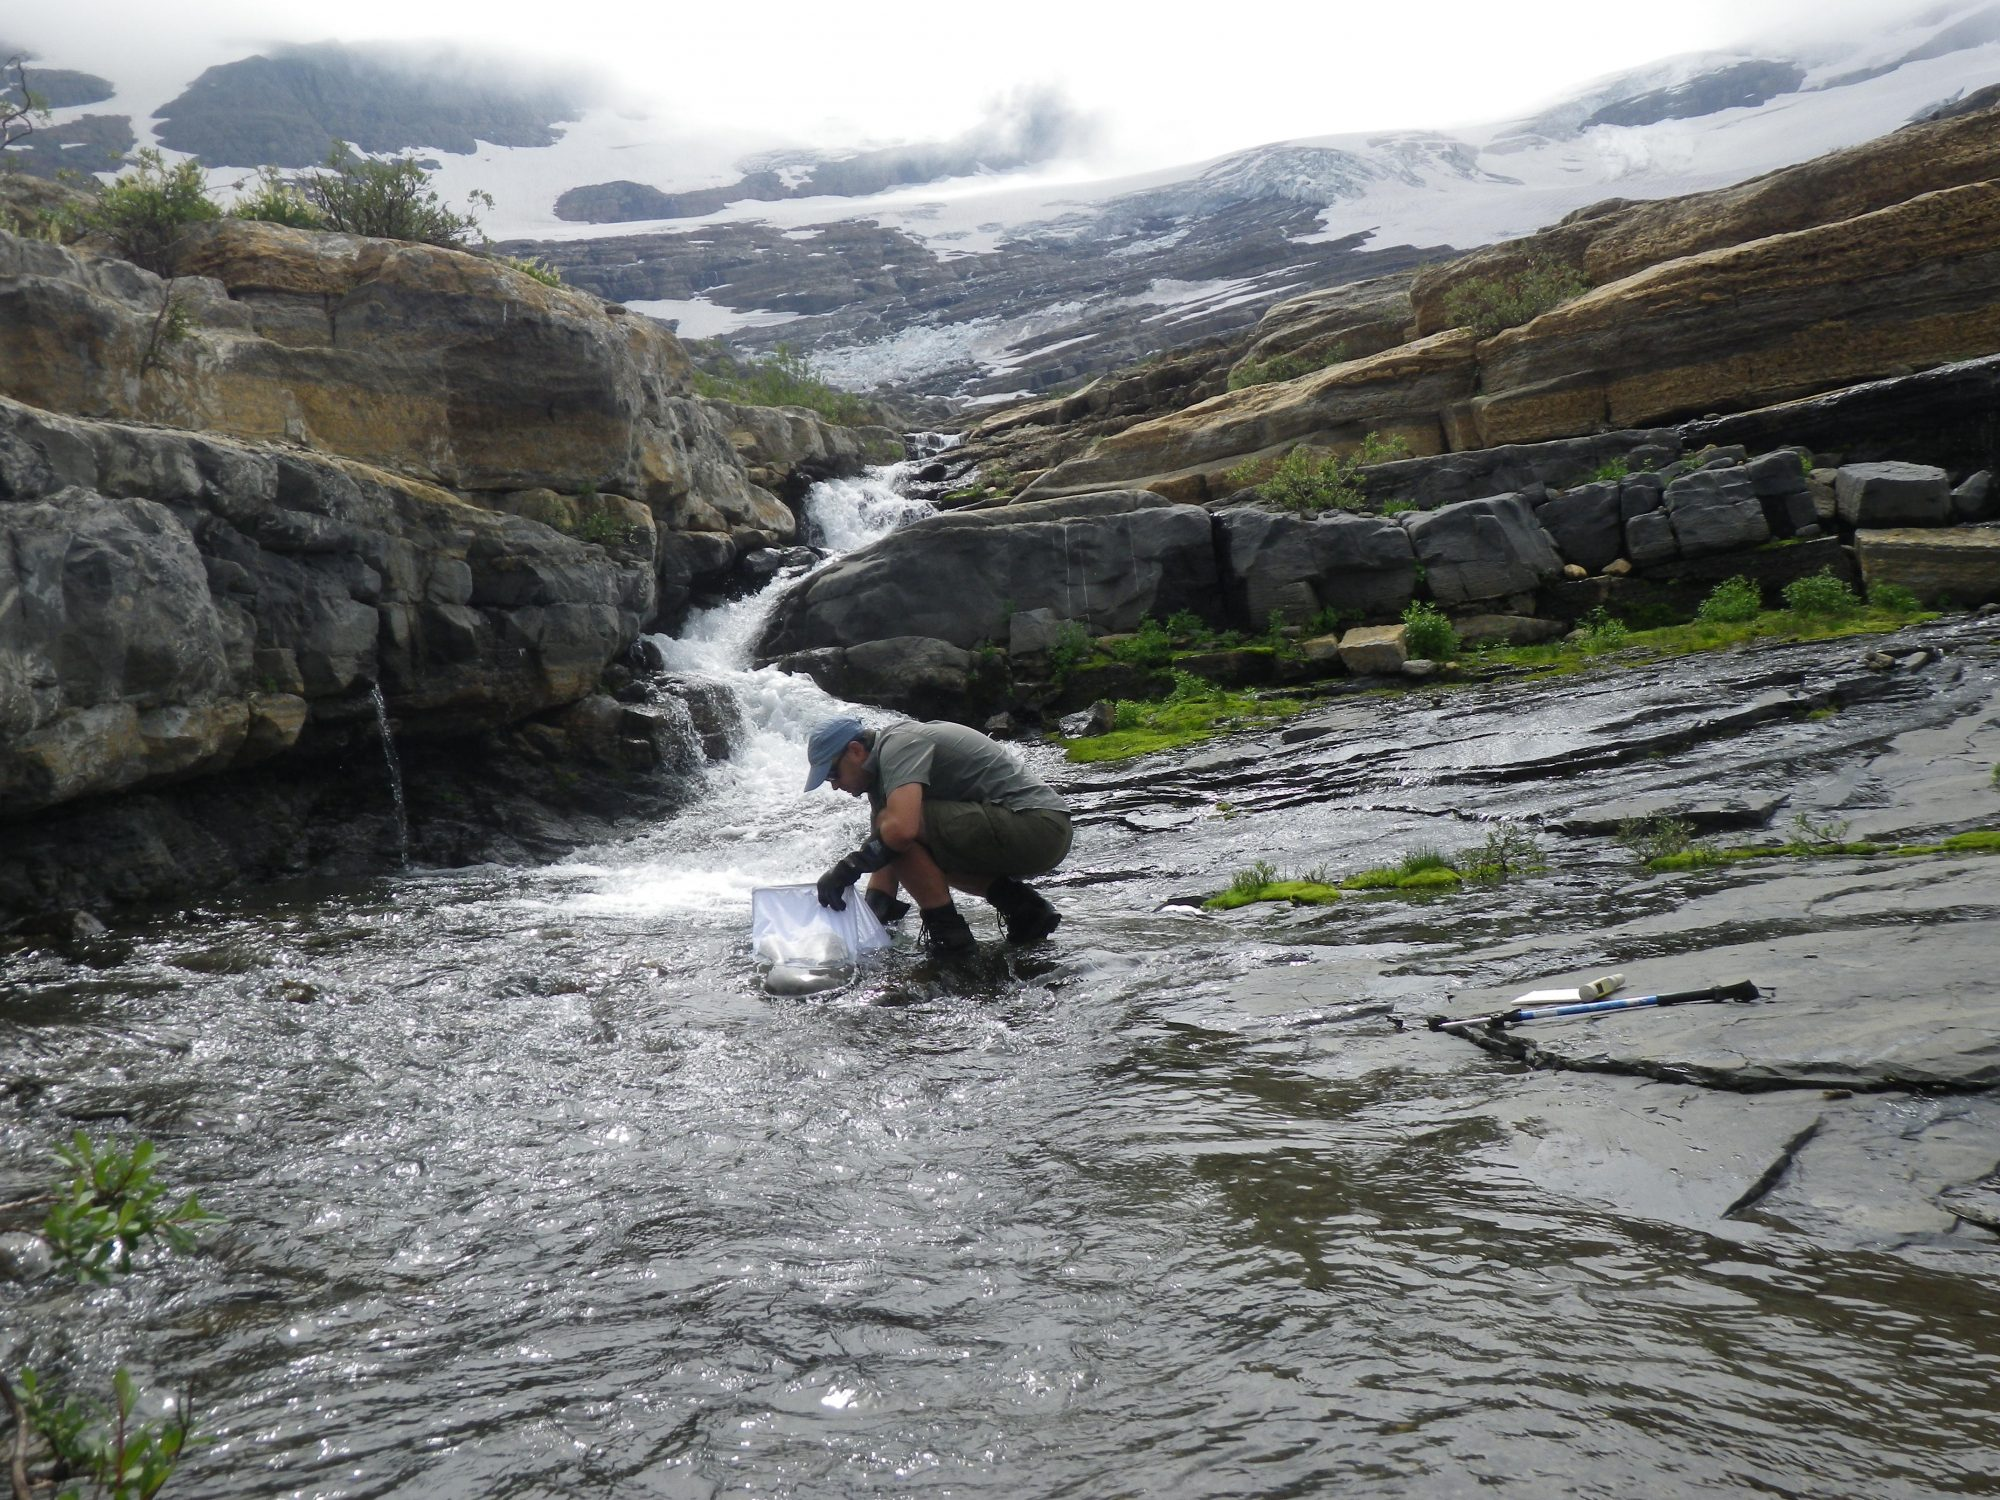 A researcher collecting samples from a stream fed by meltwater from Blackfoot Glacier (Source: Joe Giersch/USGS).